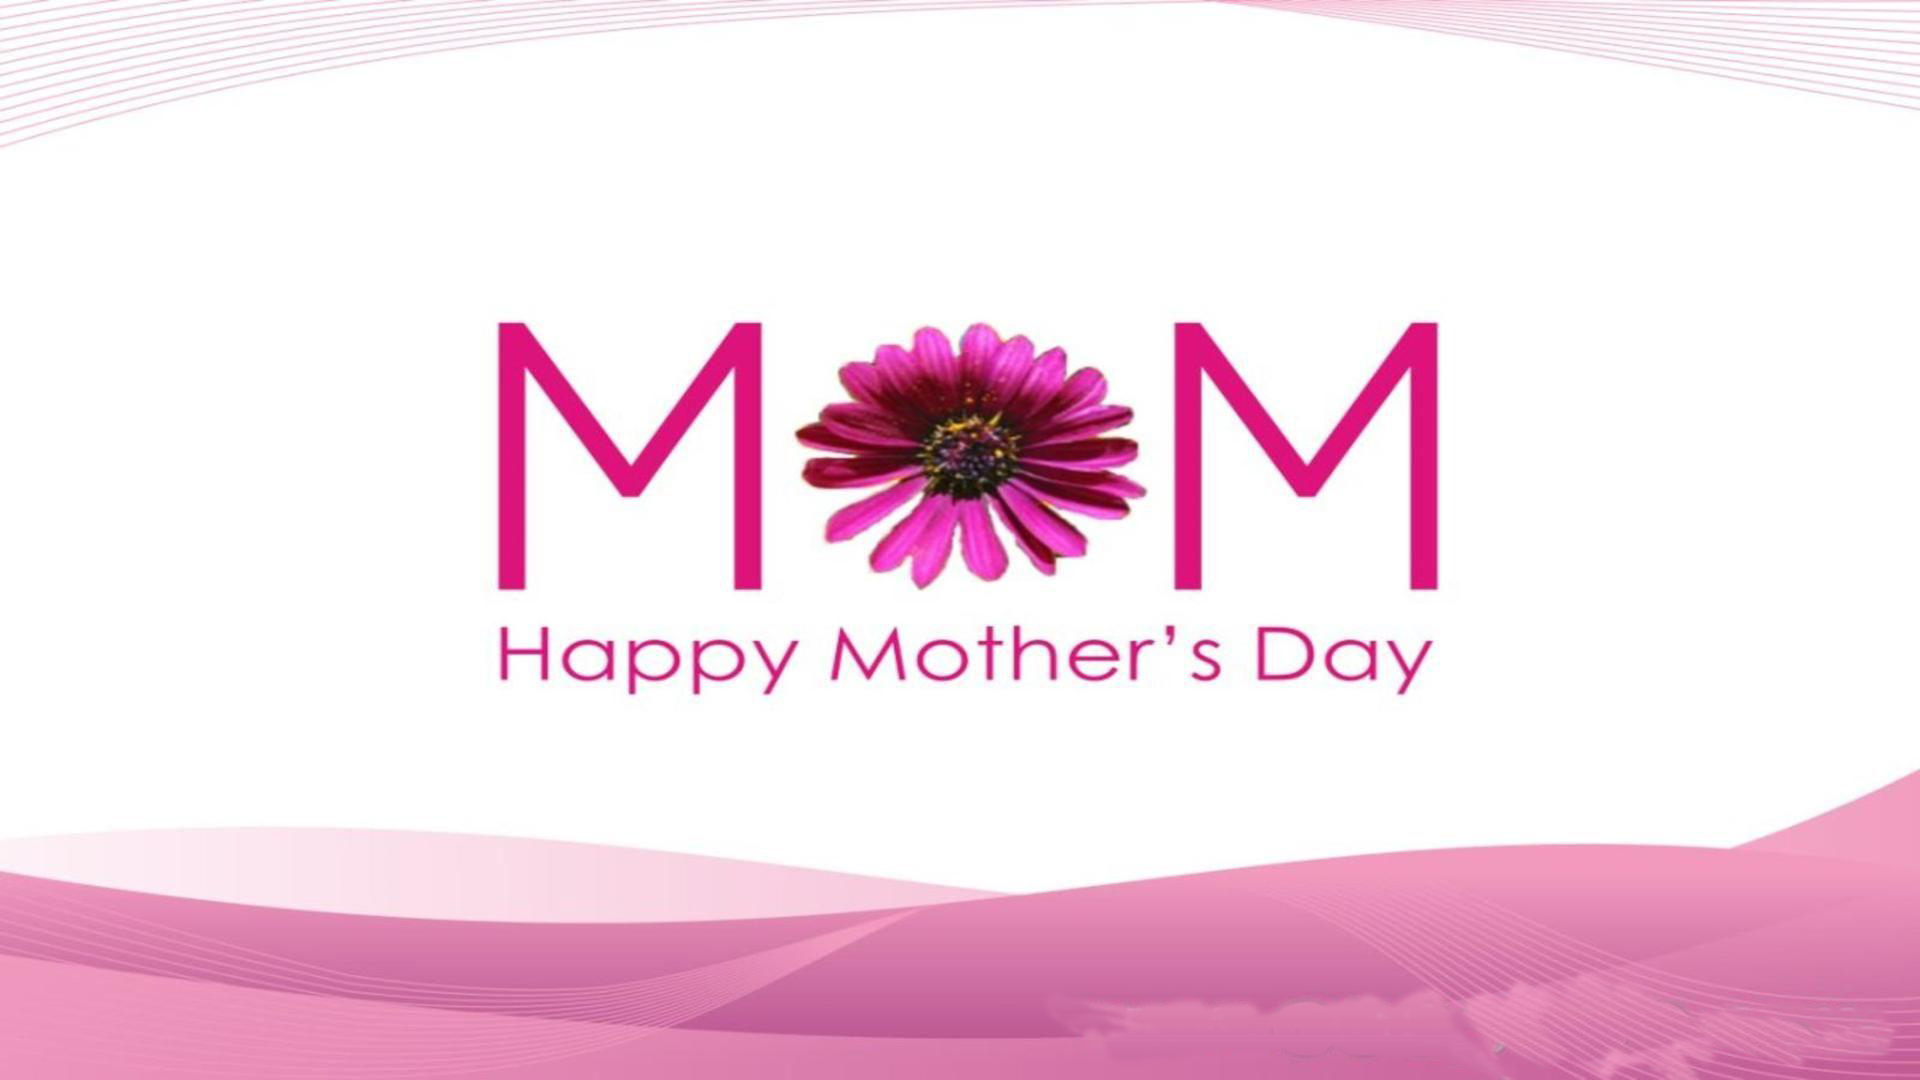 HD Mothers Day Wallpaper